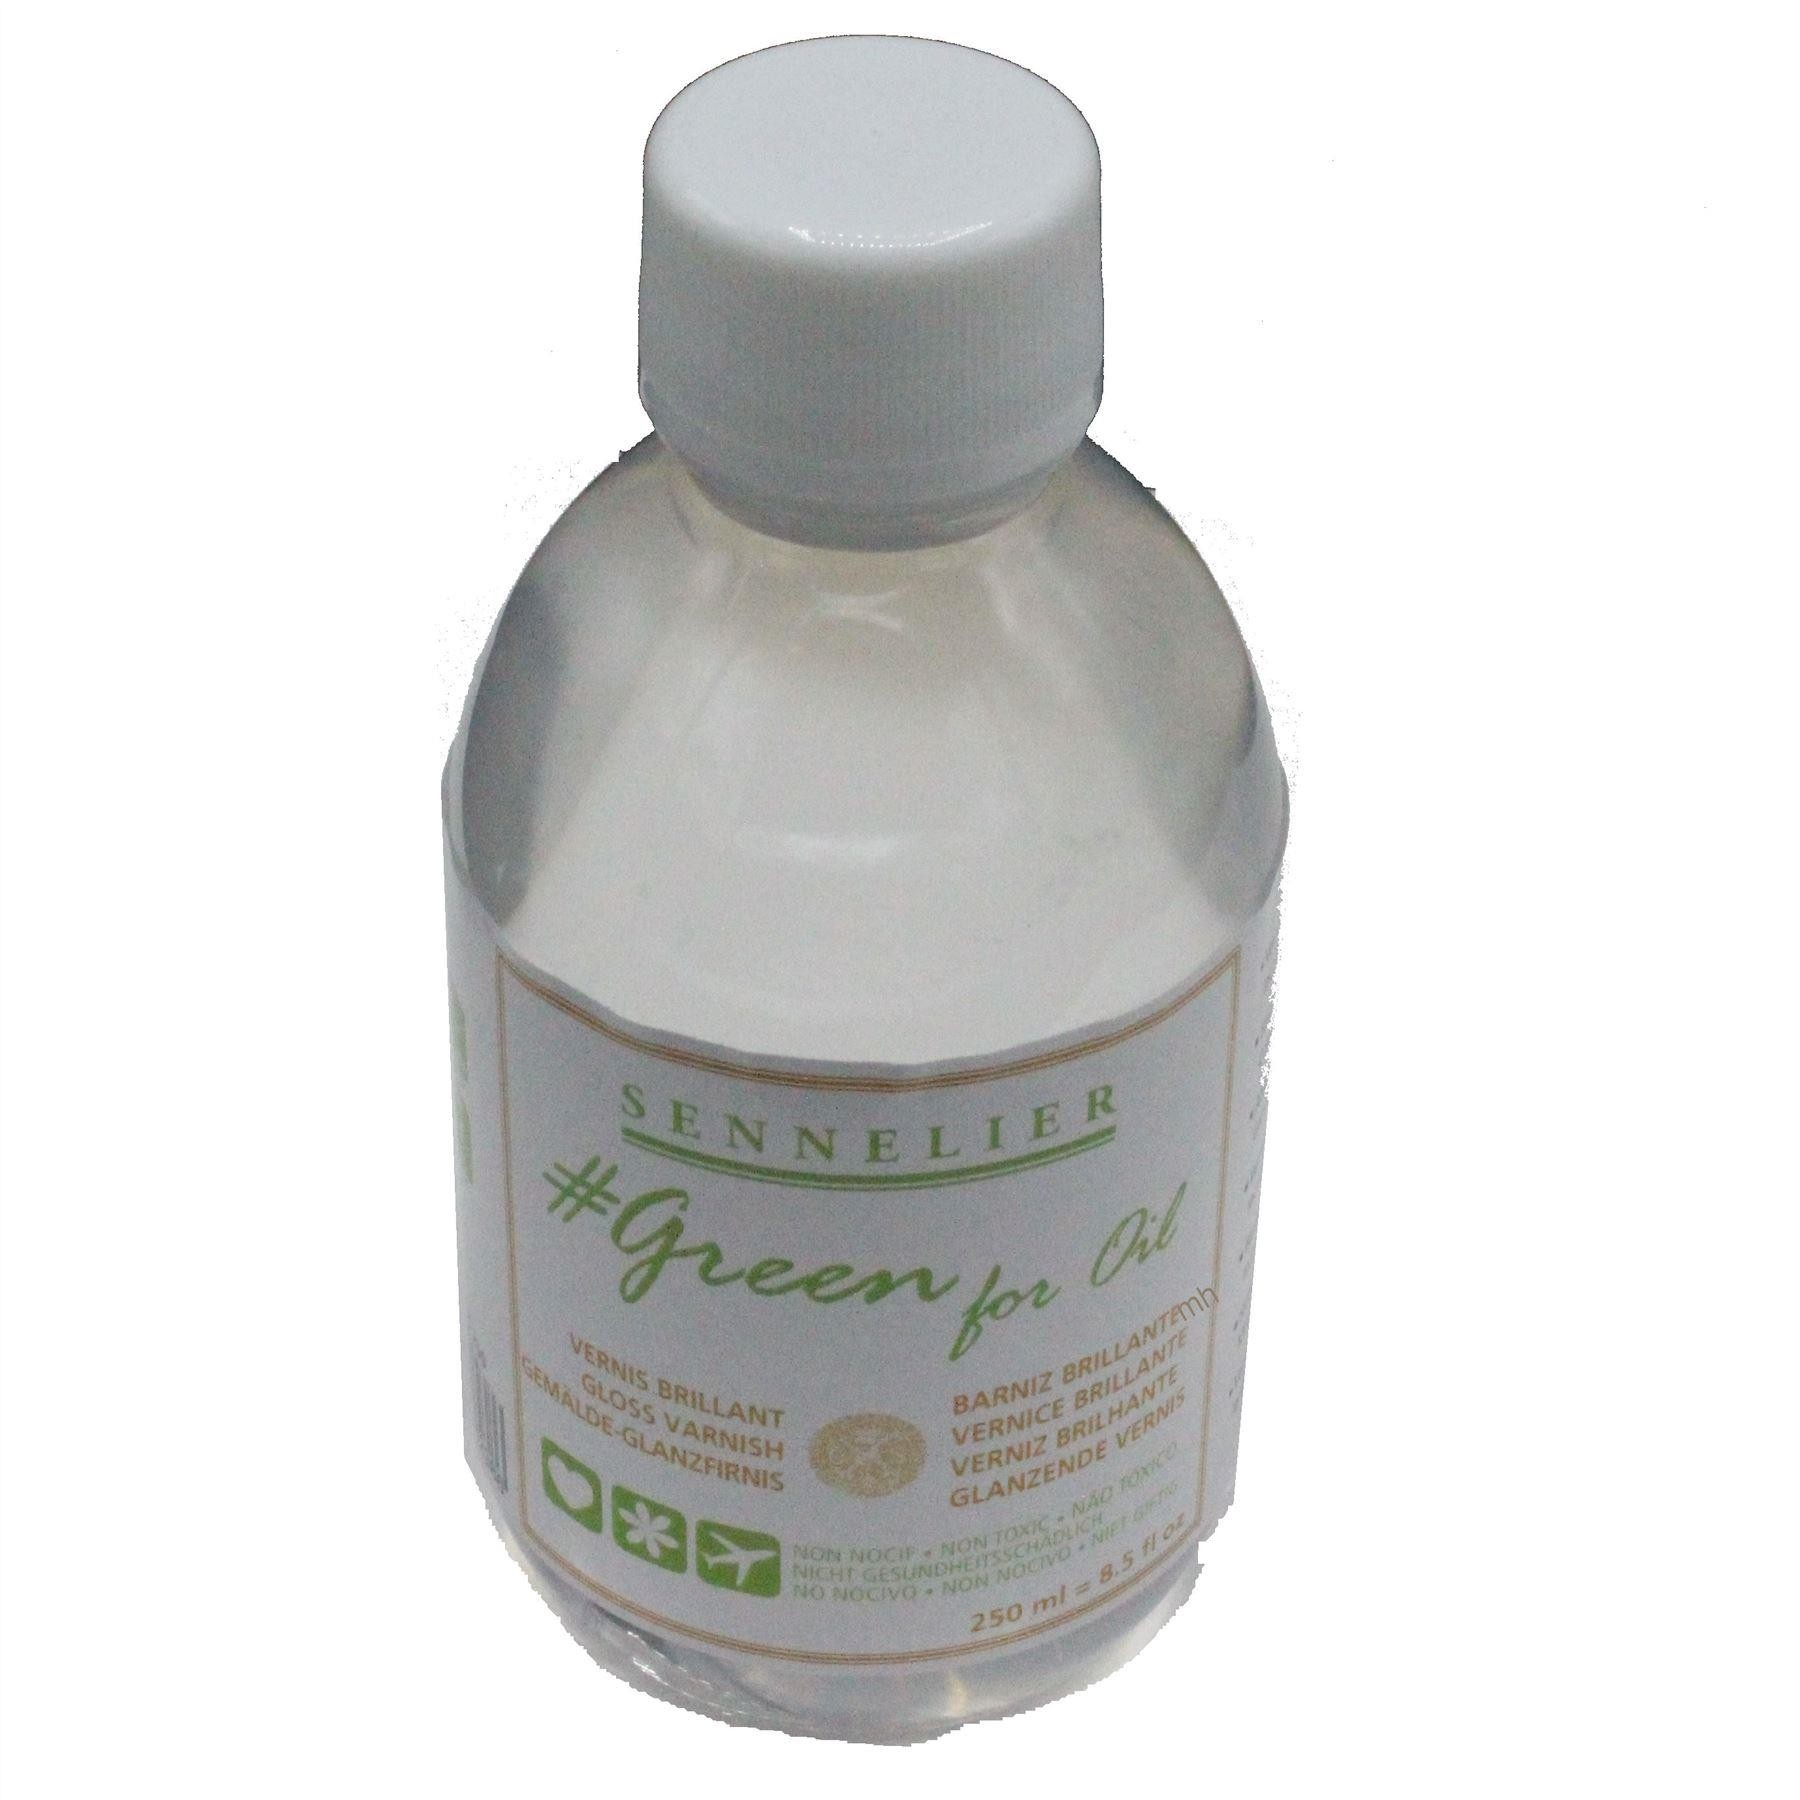 Sennelier Green for oil 250ml Gloss Varnish